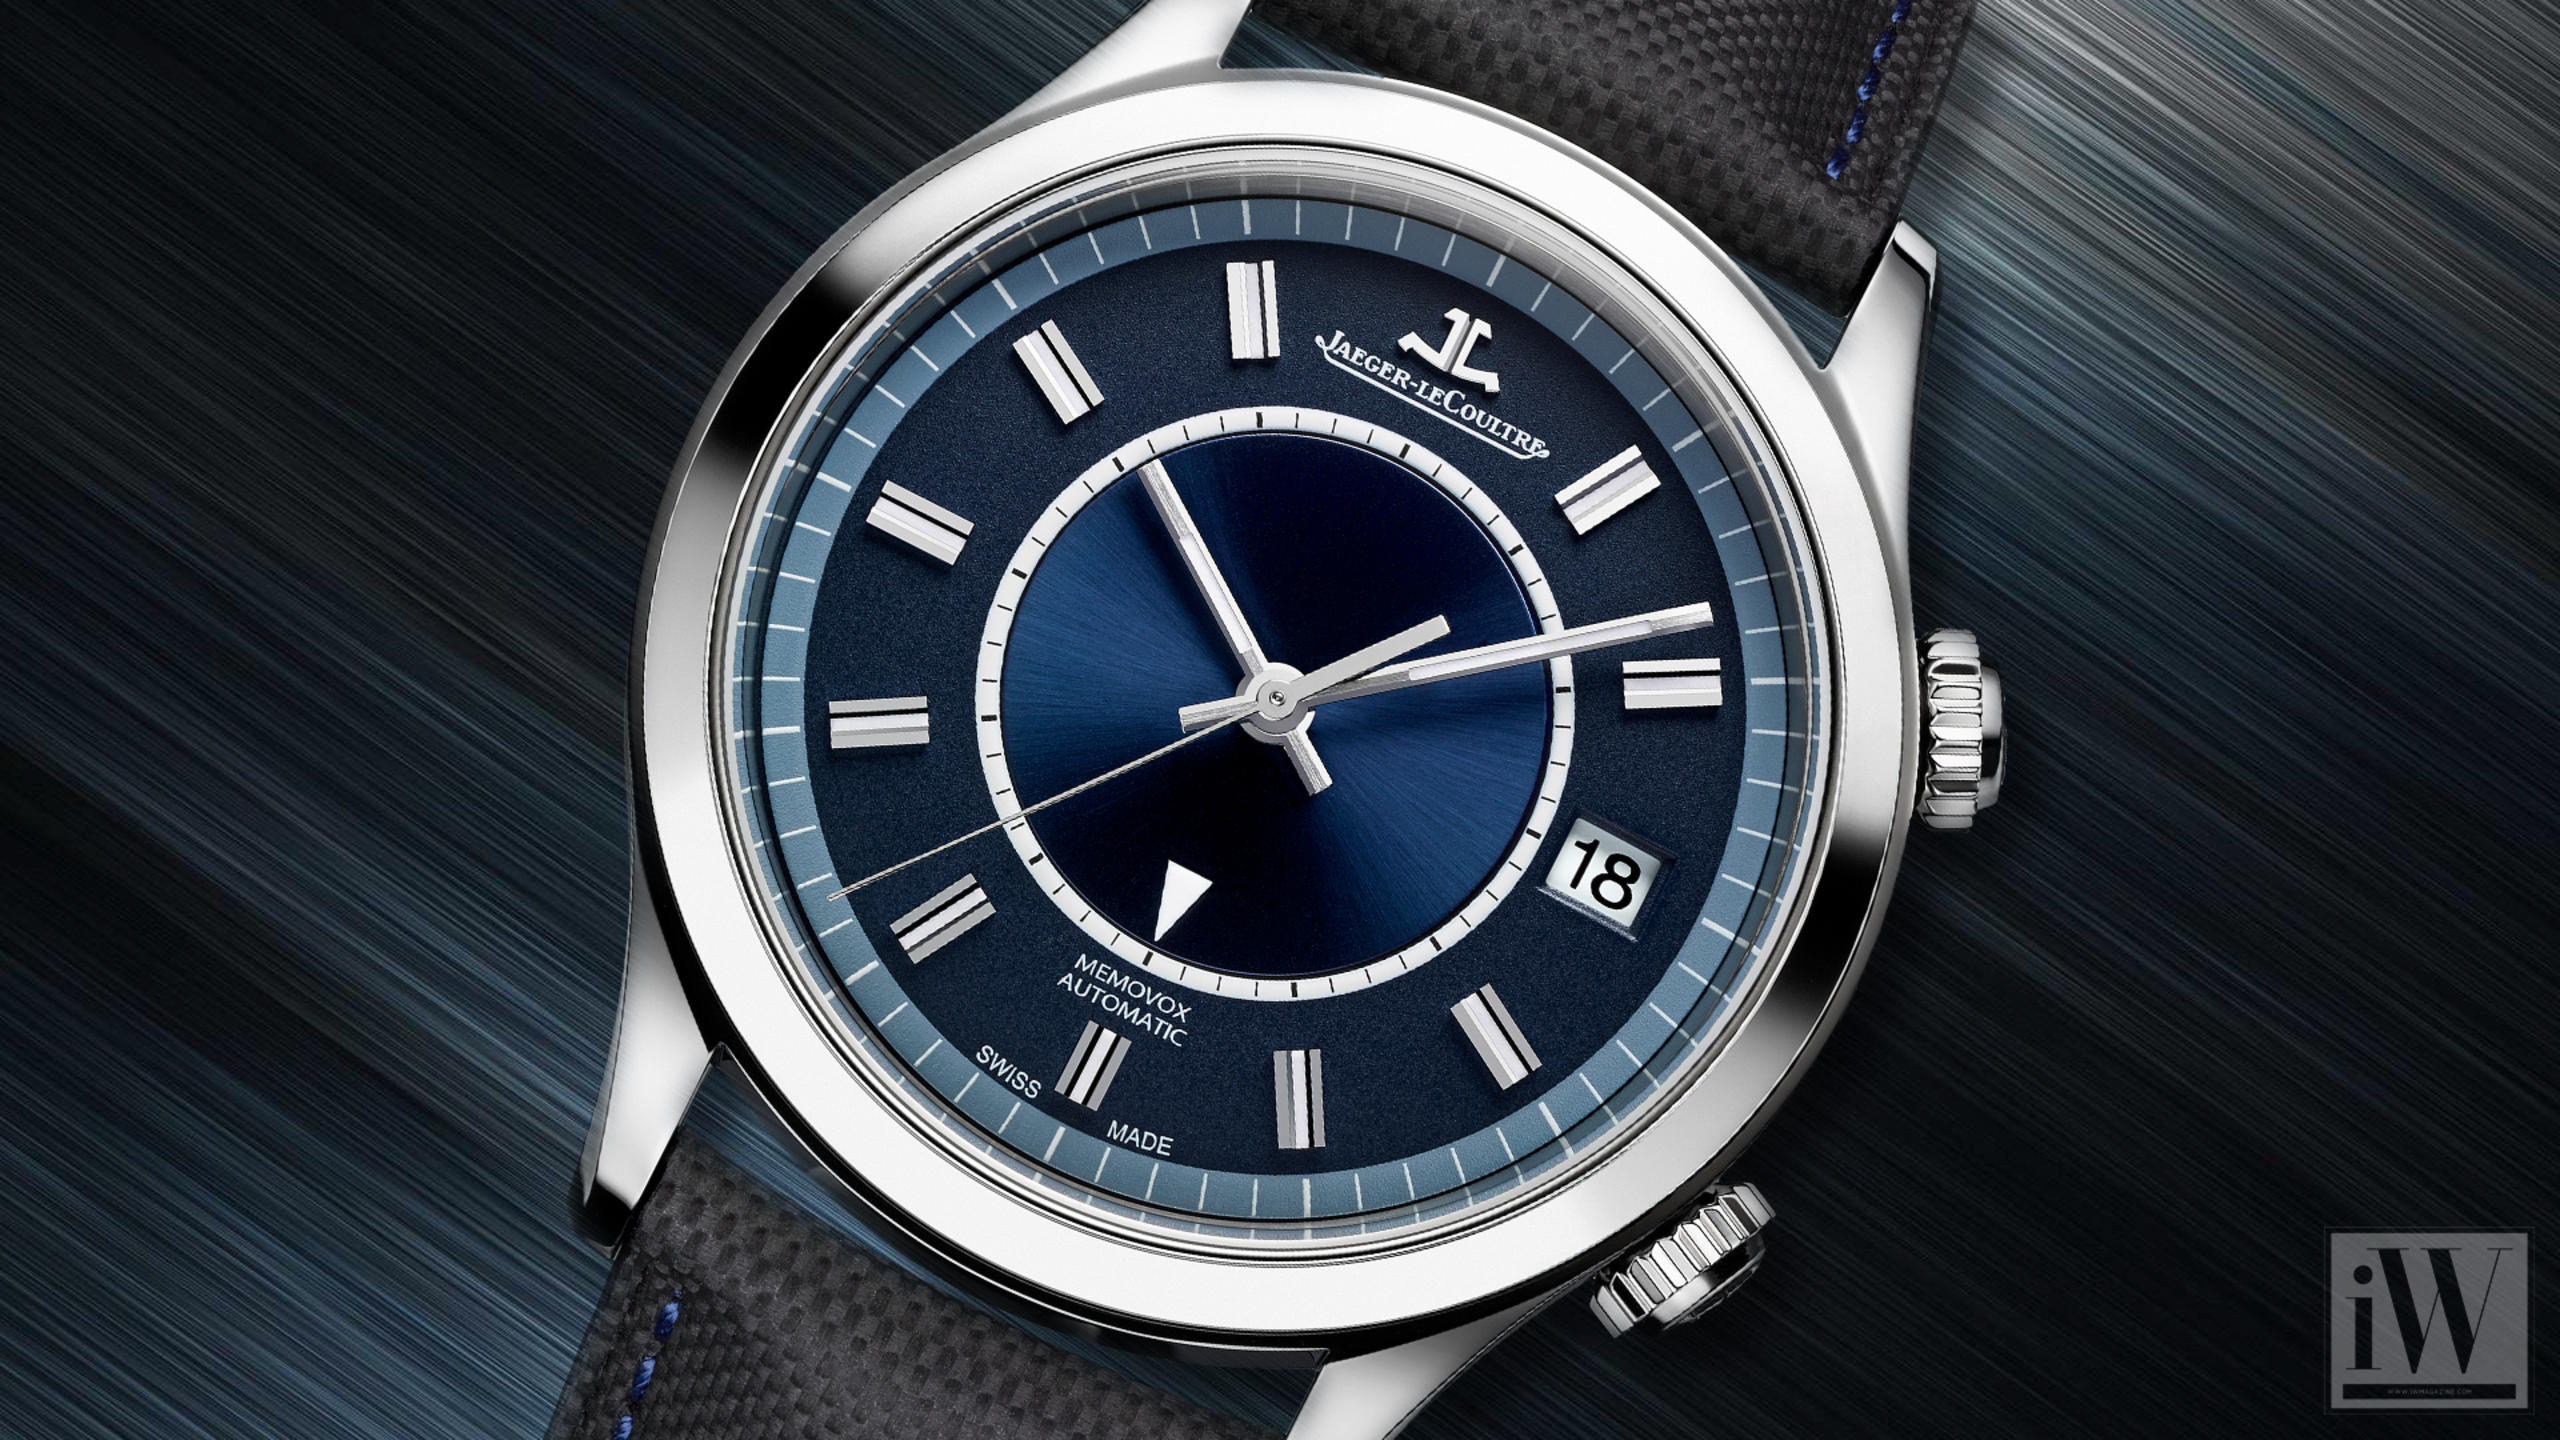 Jaeger-LeCoultre Celebrates Memovox with a Special Boutique Edition